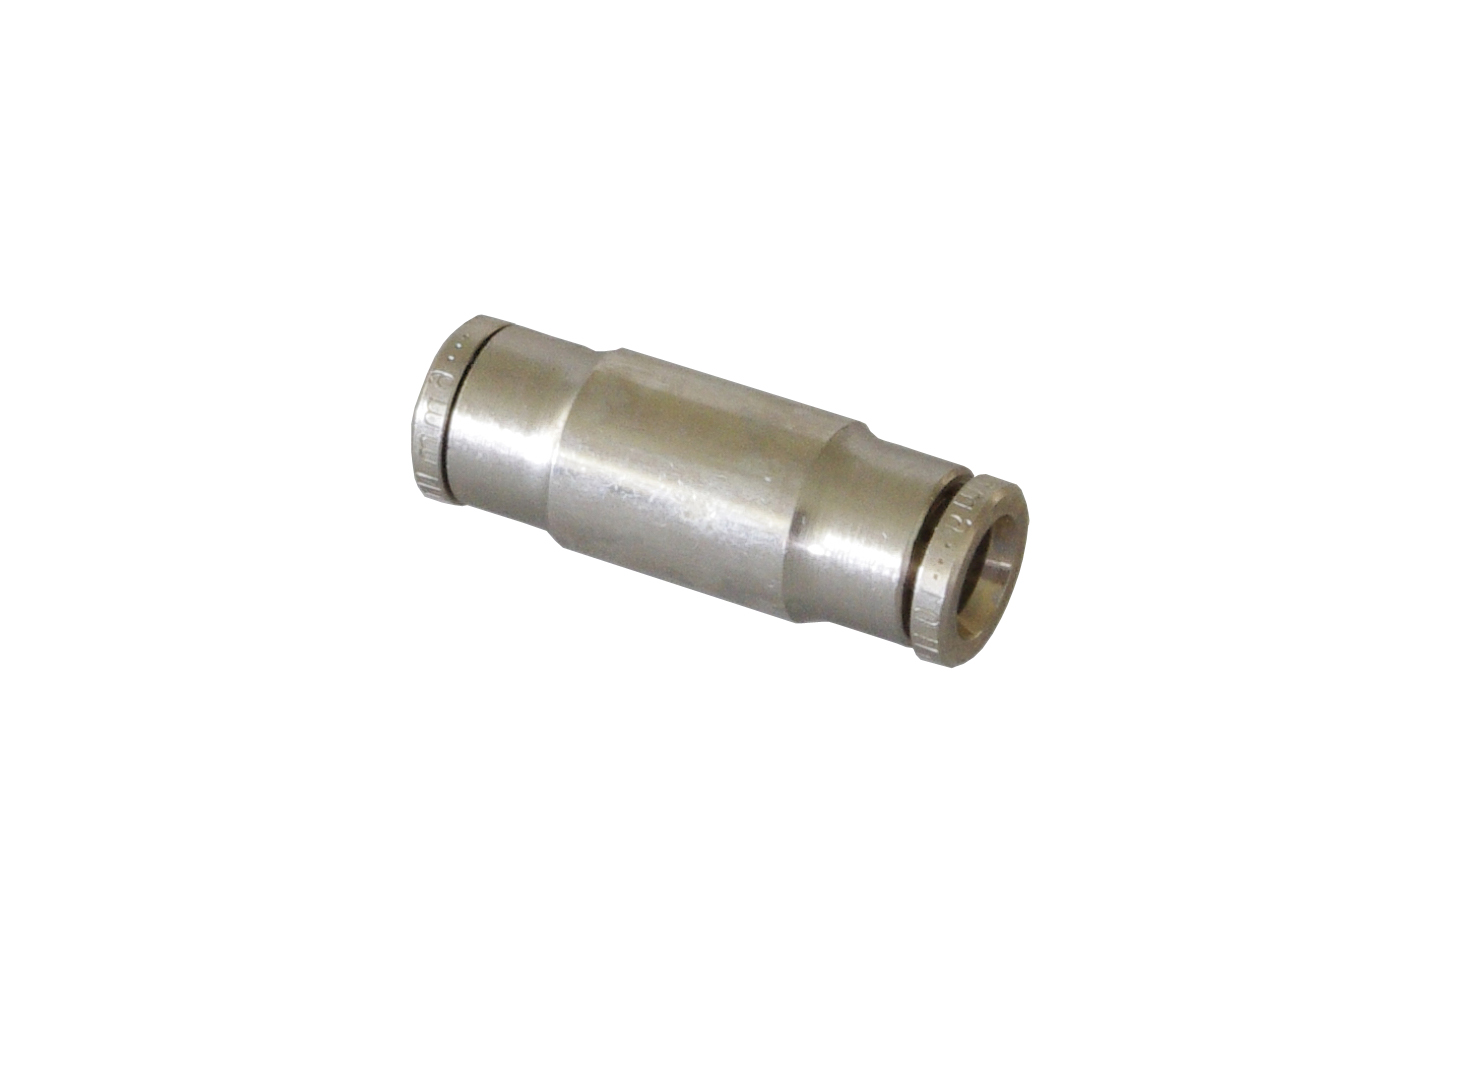 Compression fitting 6 mm